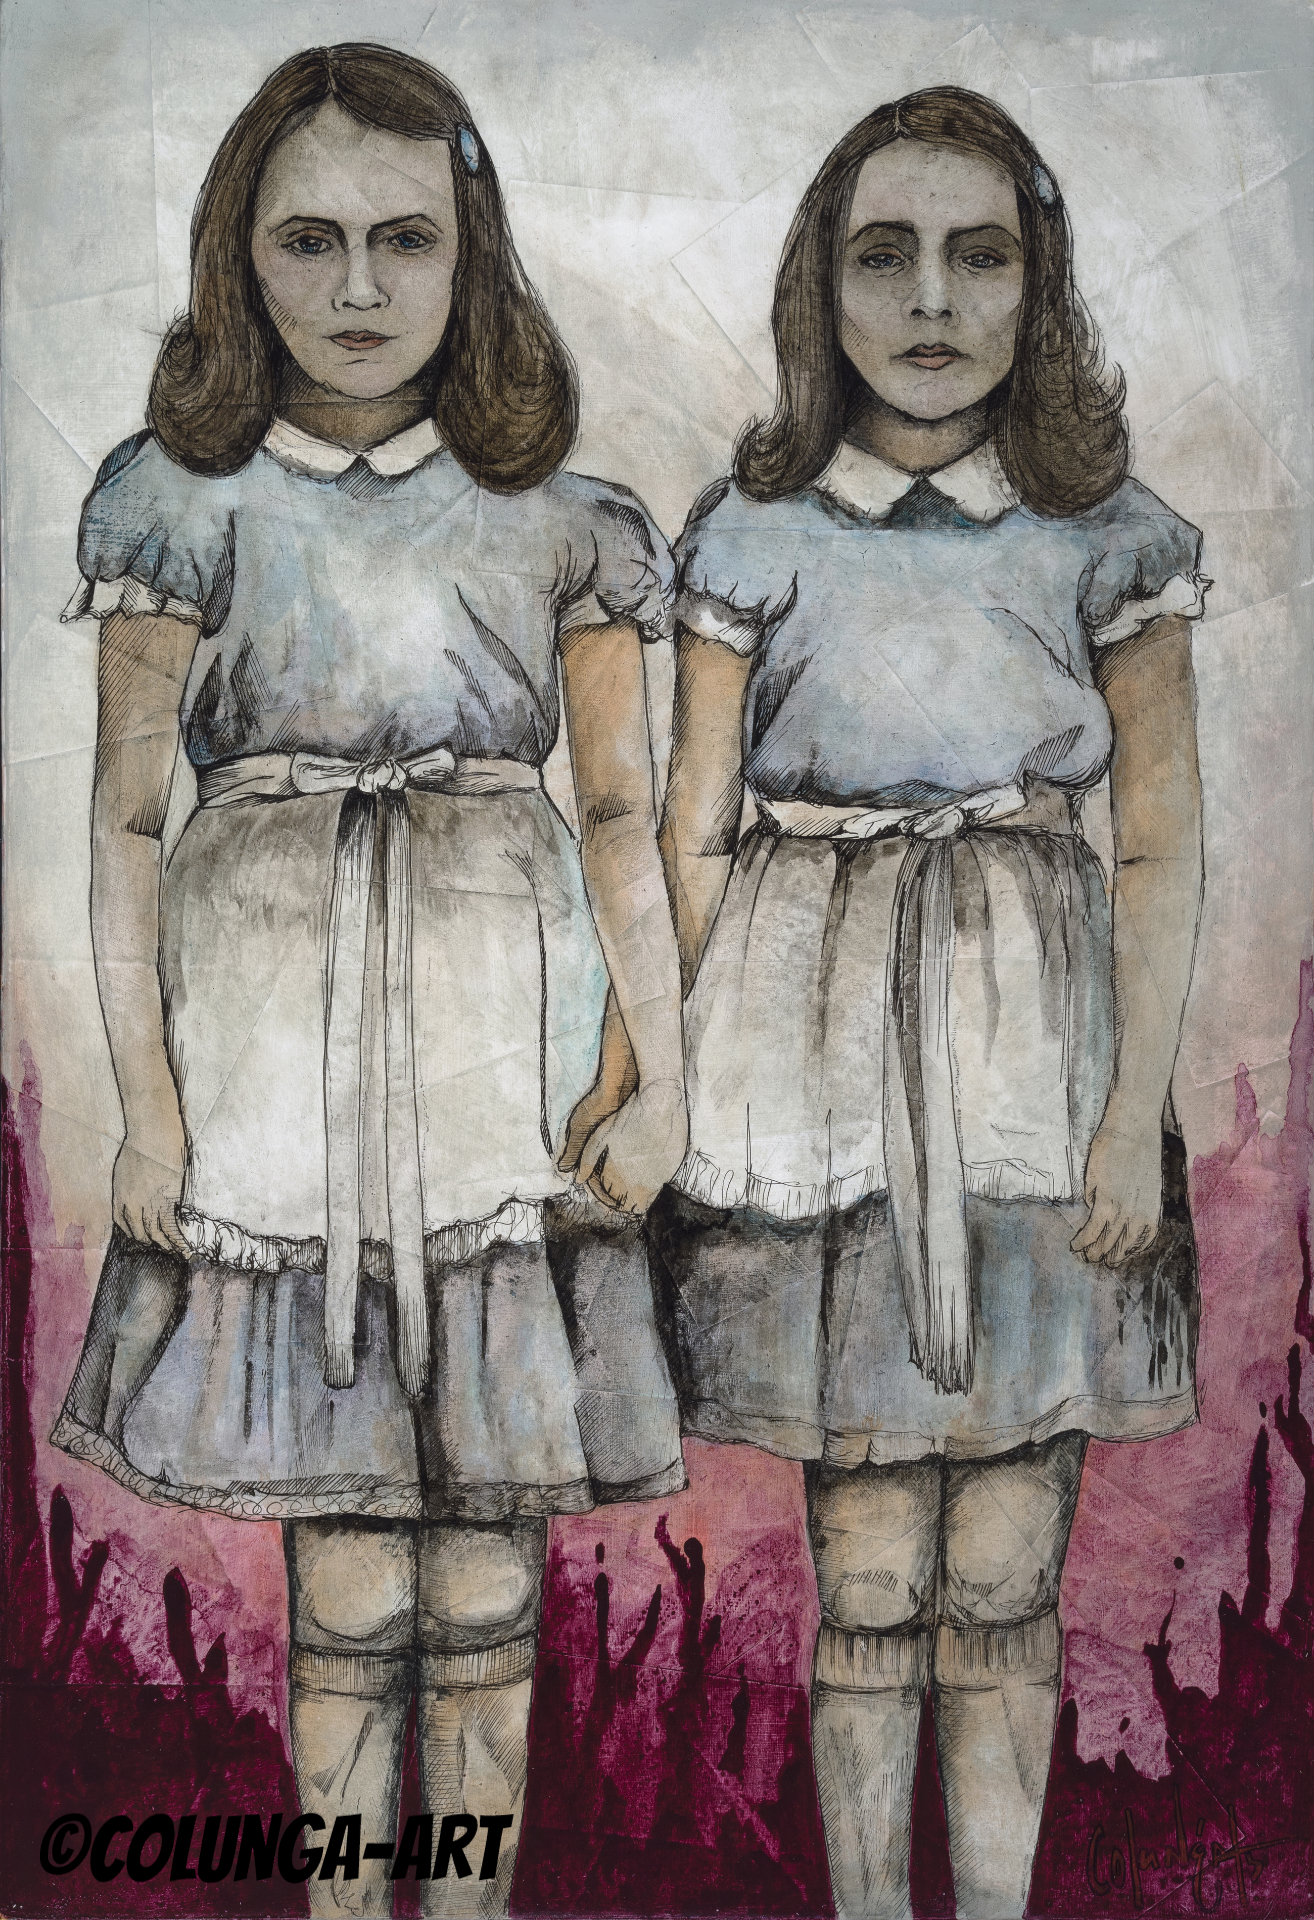 The Grady Sisters